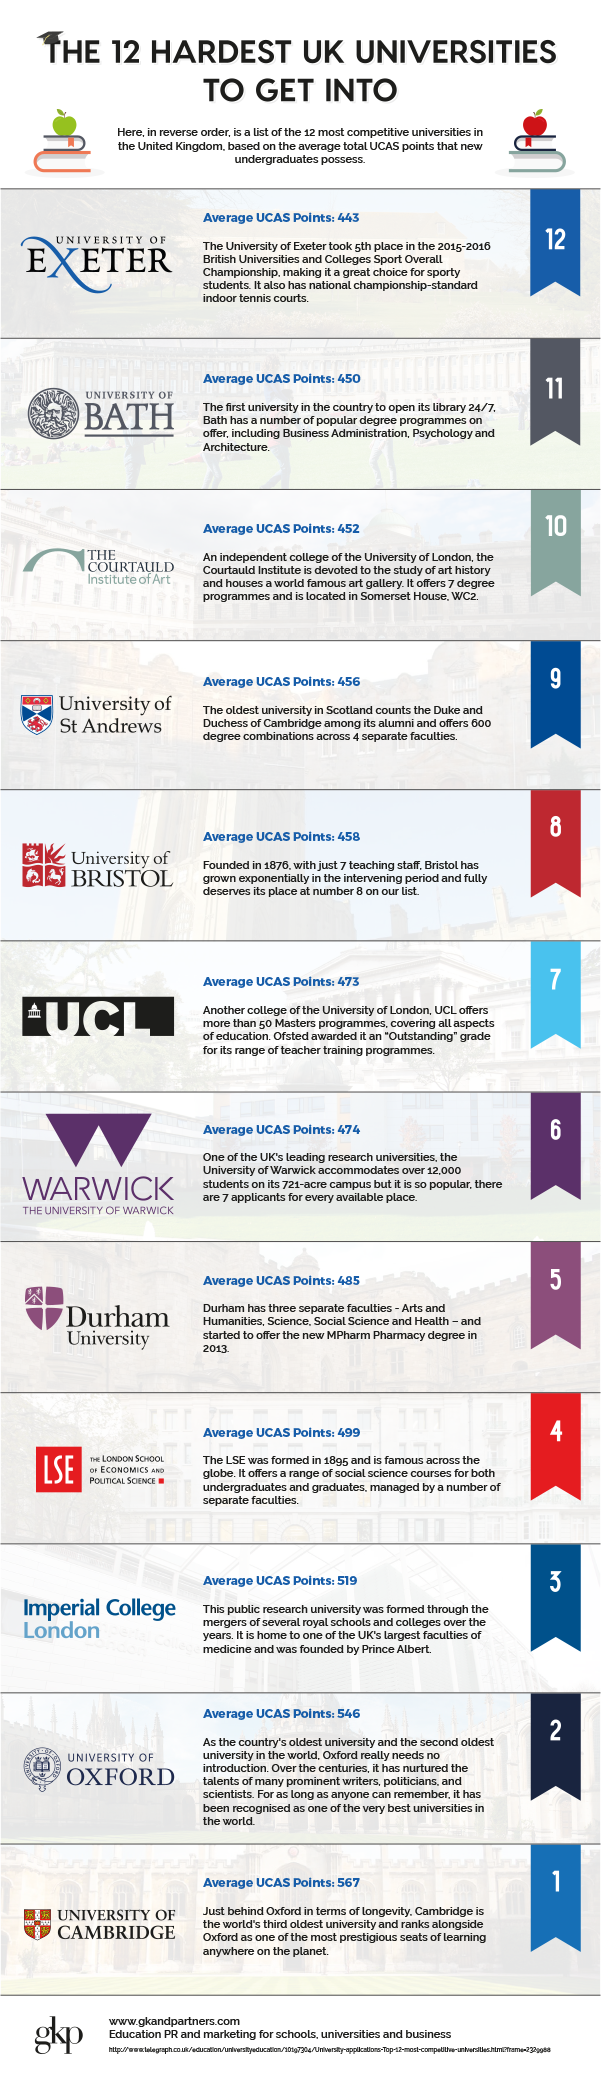 Top 12 Hardest UK Universities to Get Into | Home Business